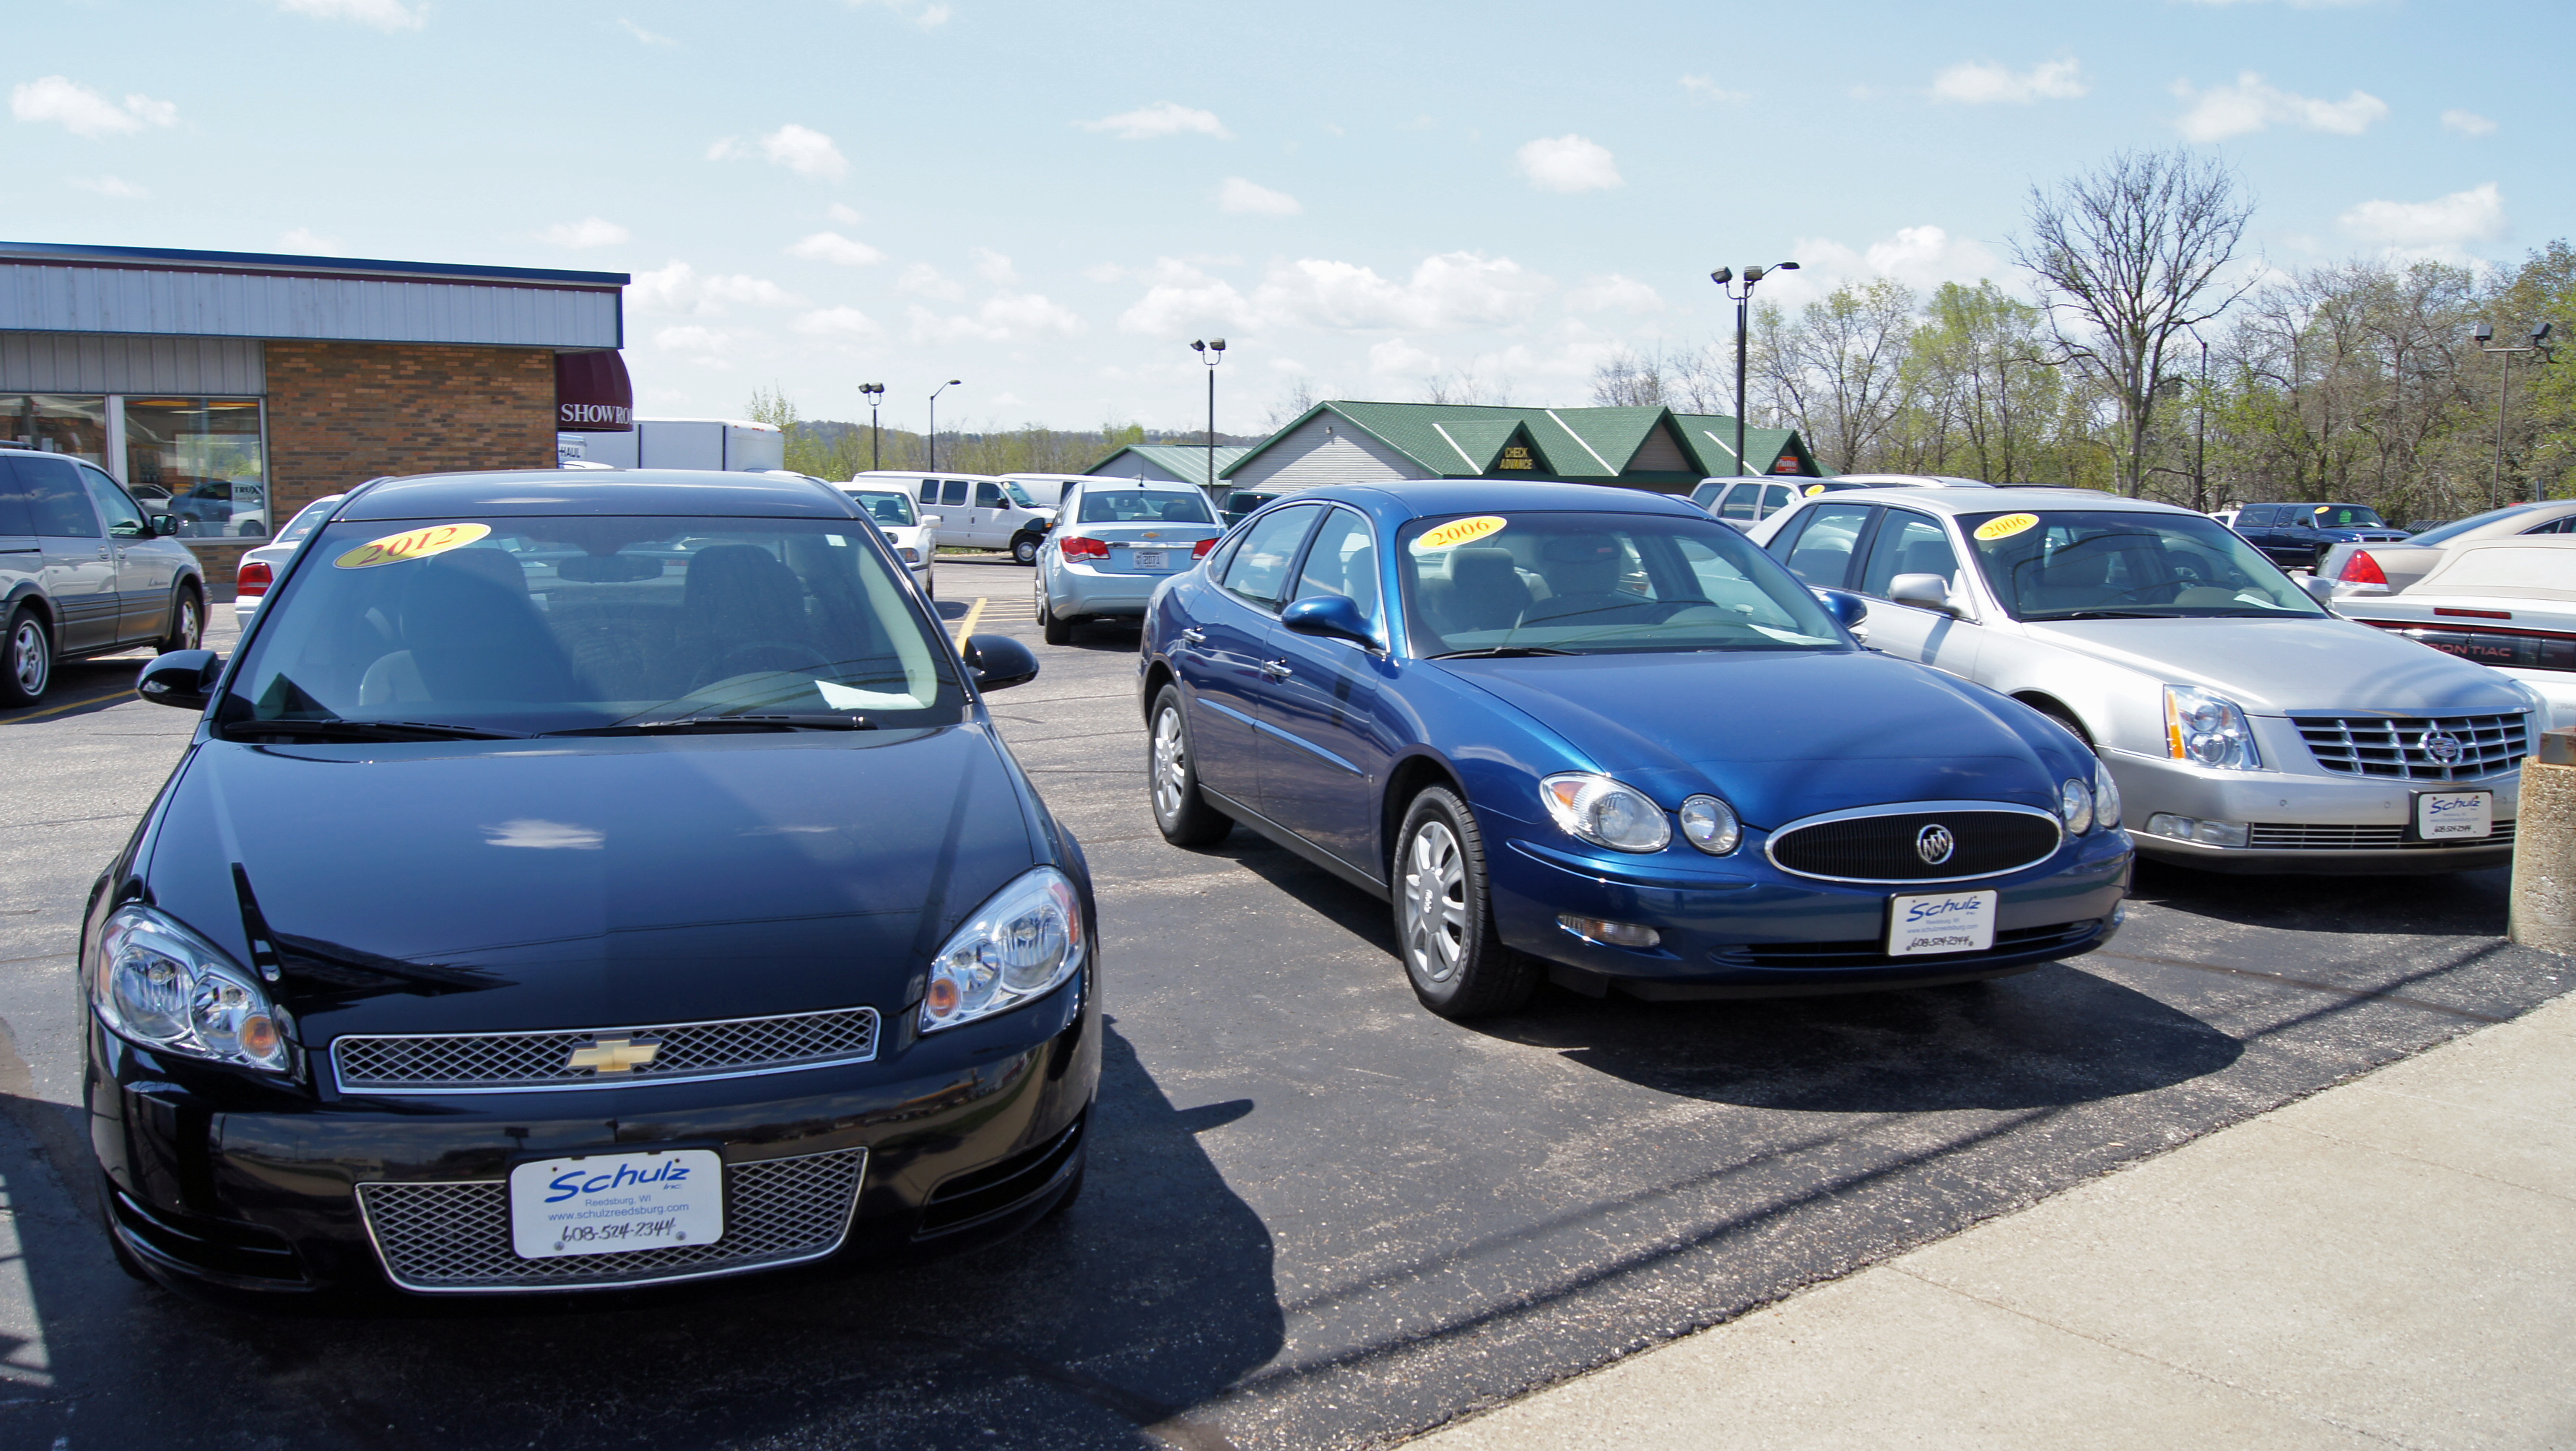 used car Enterprise car sales offers an extensive inventory of certified used cars for sale near you.